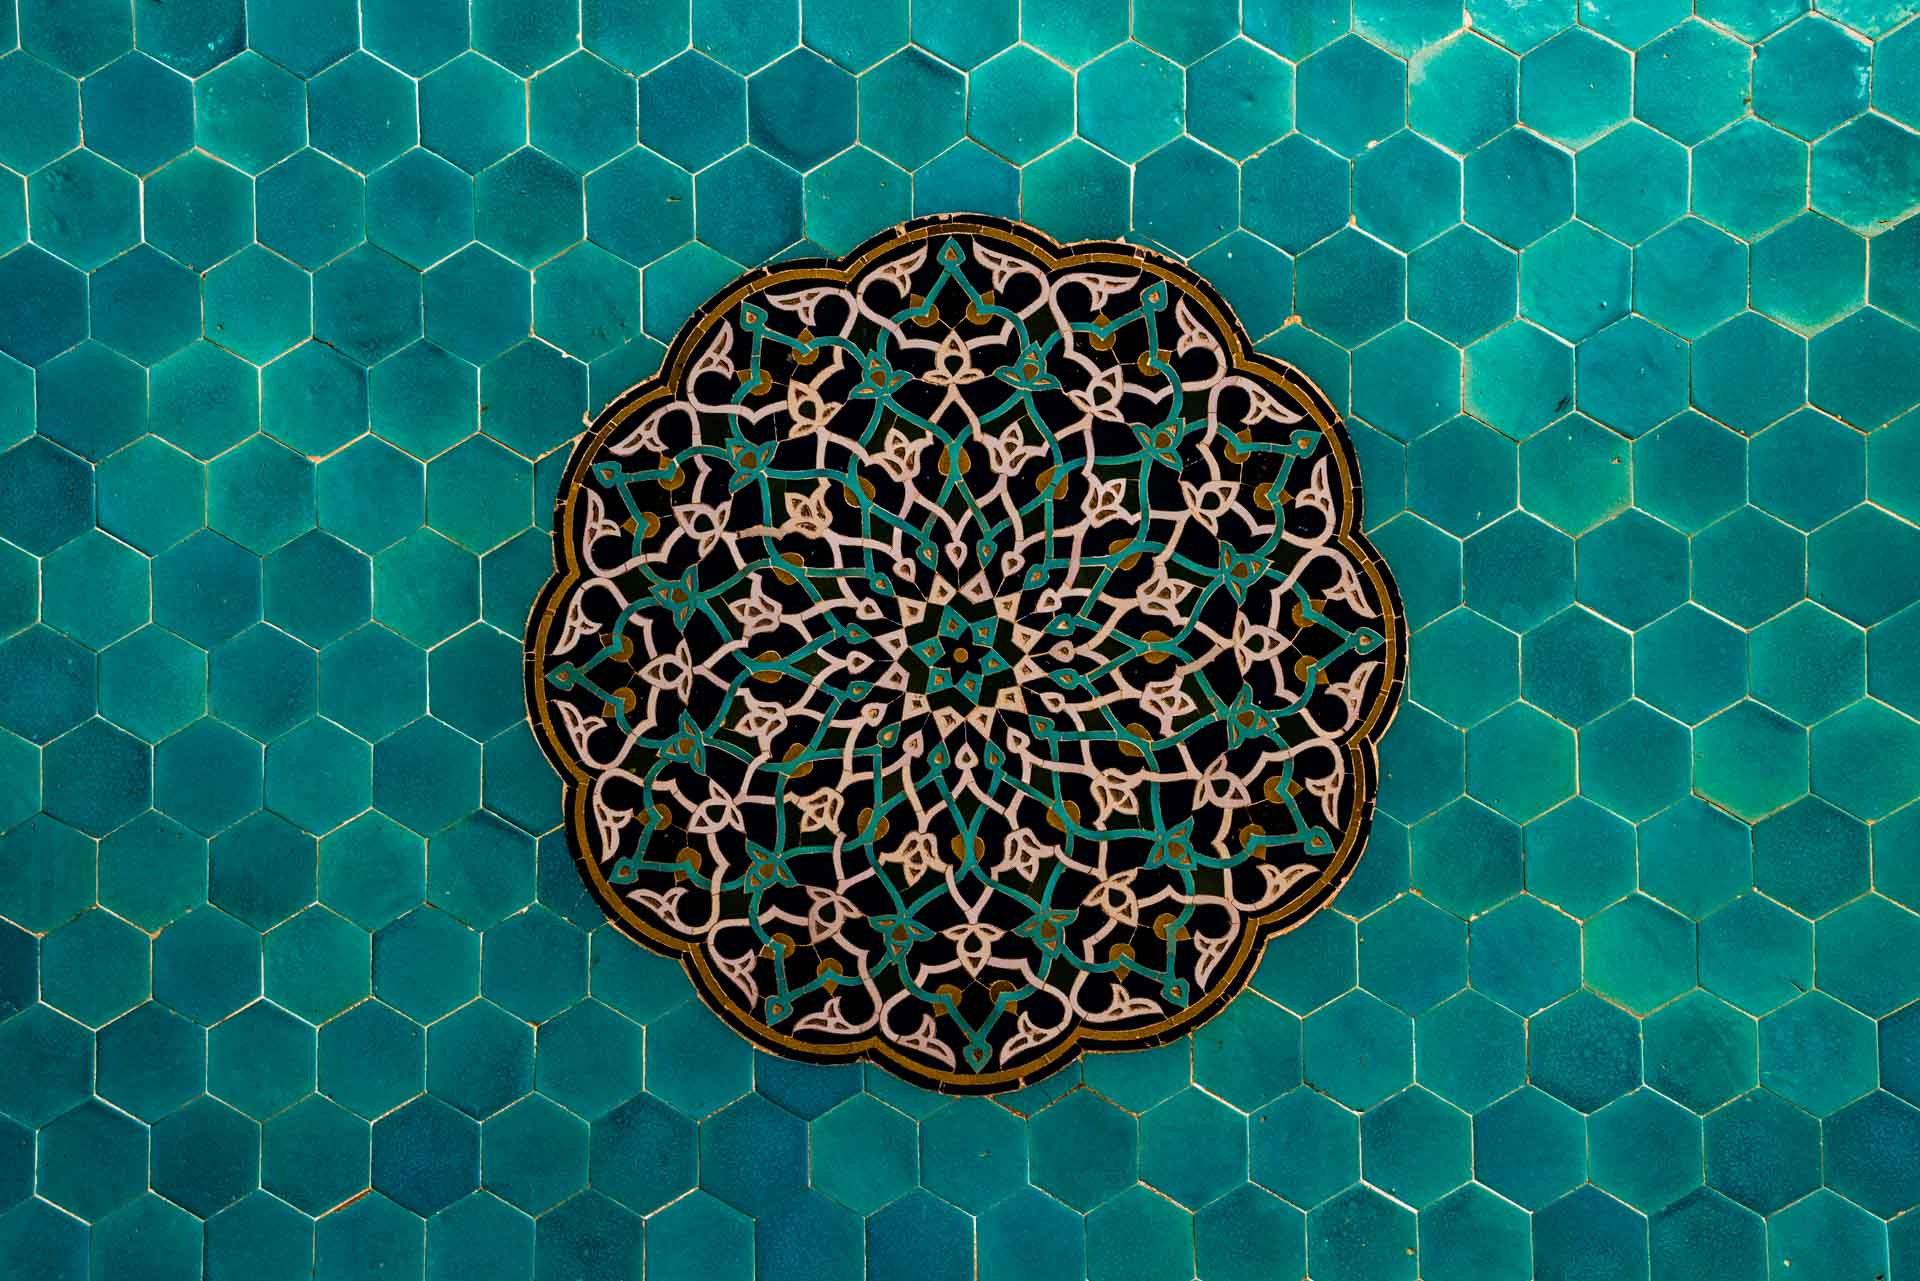 Yazd Jame Mosque tile work